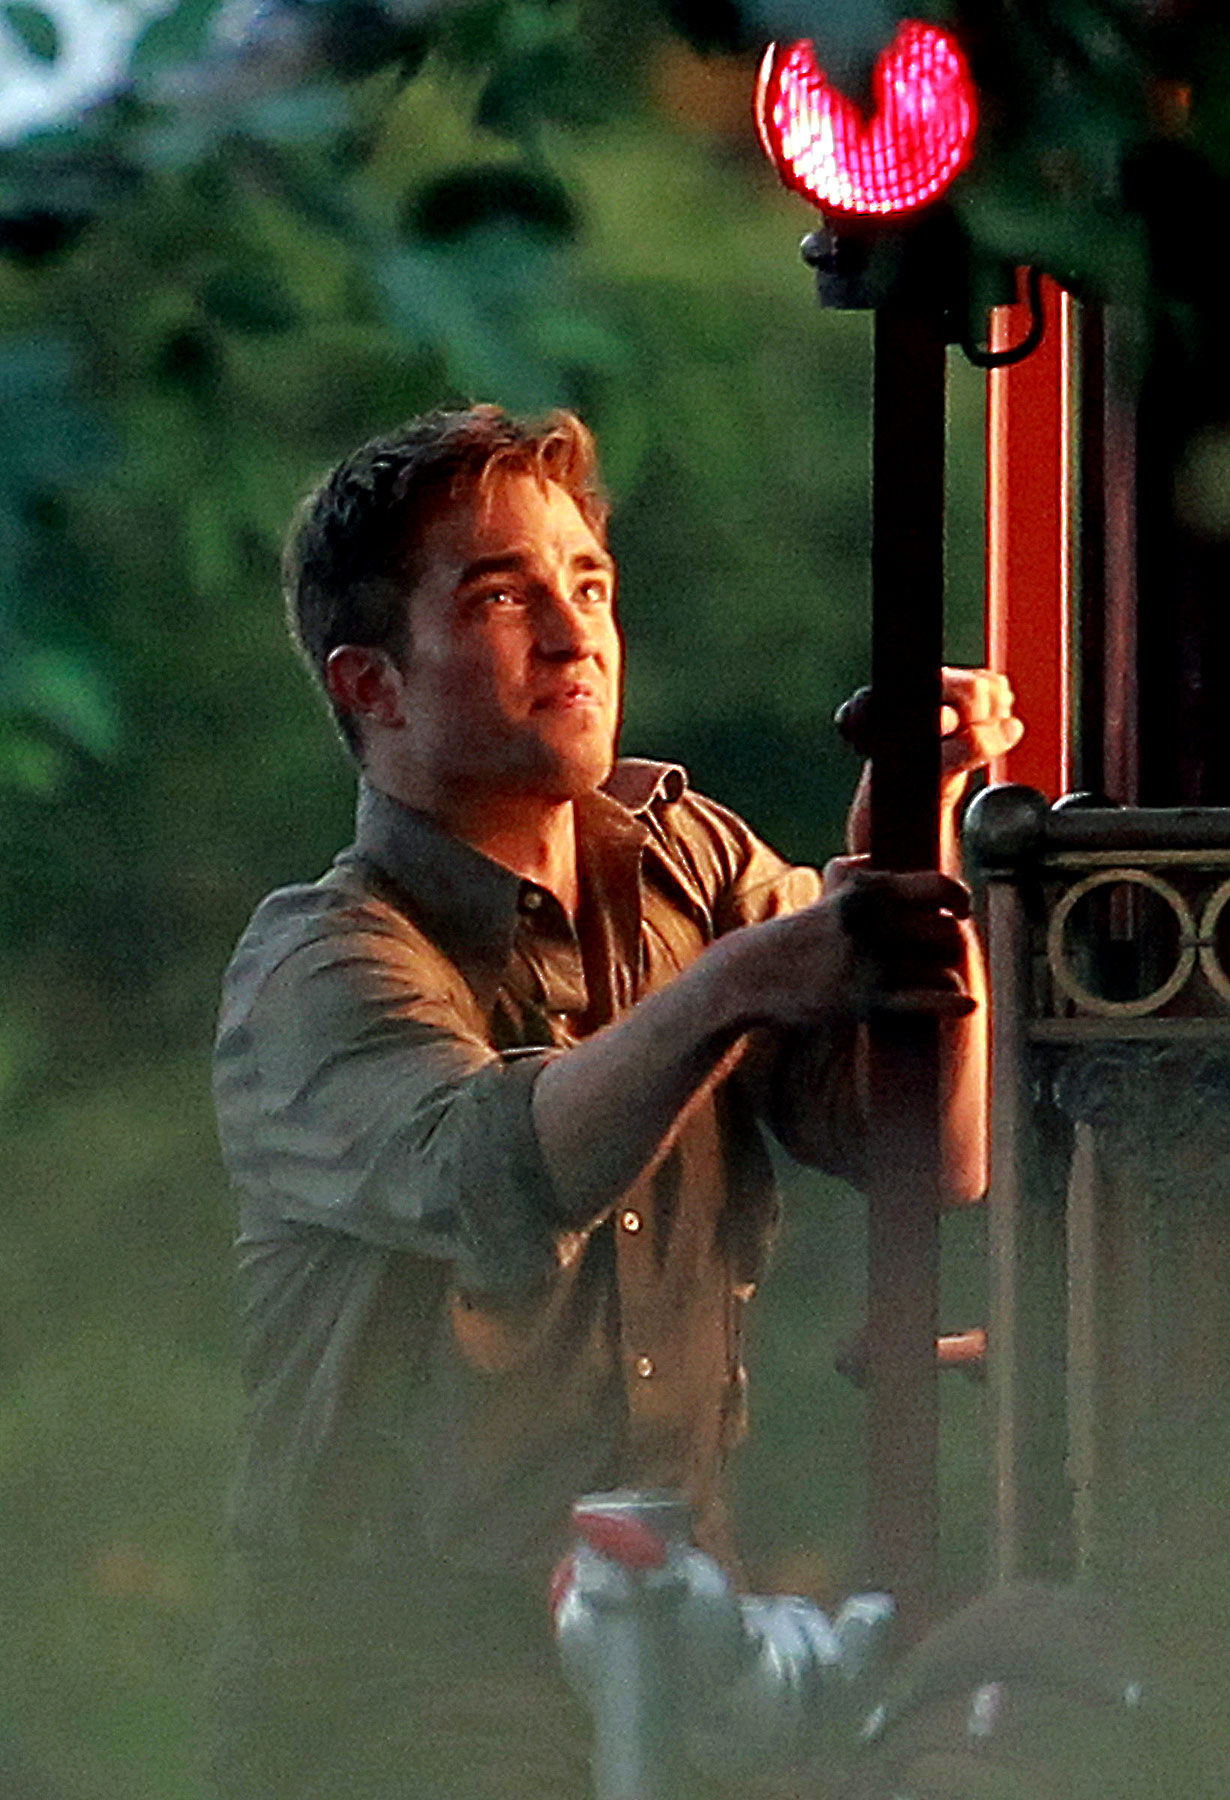 Robert Pattinson Lights Up 'Water For Elephants' (PHOTOS)